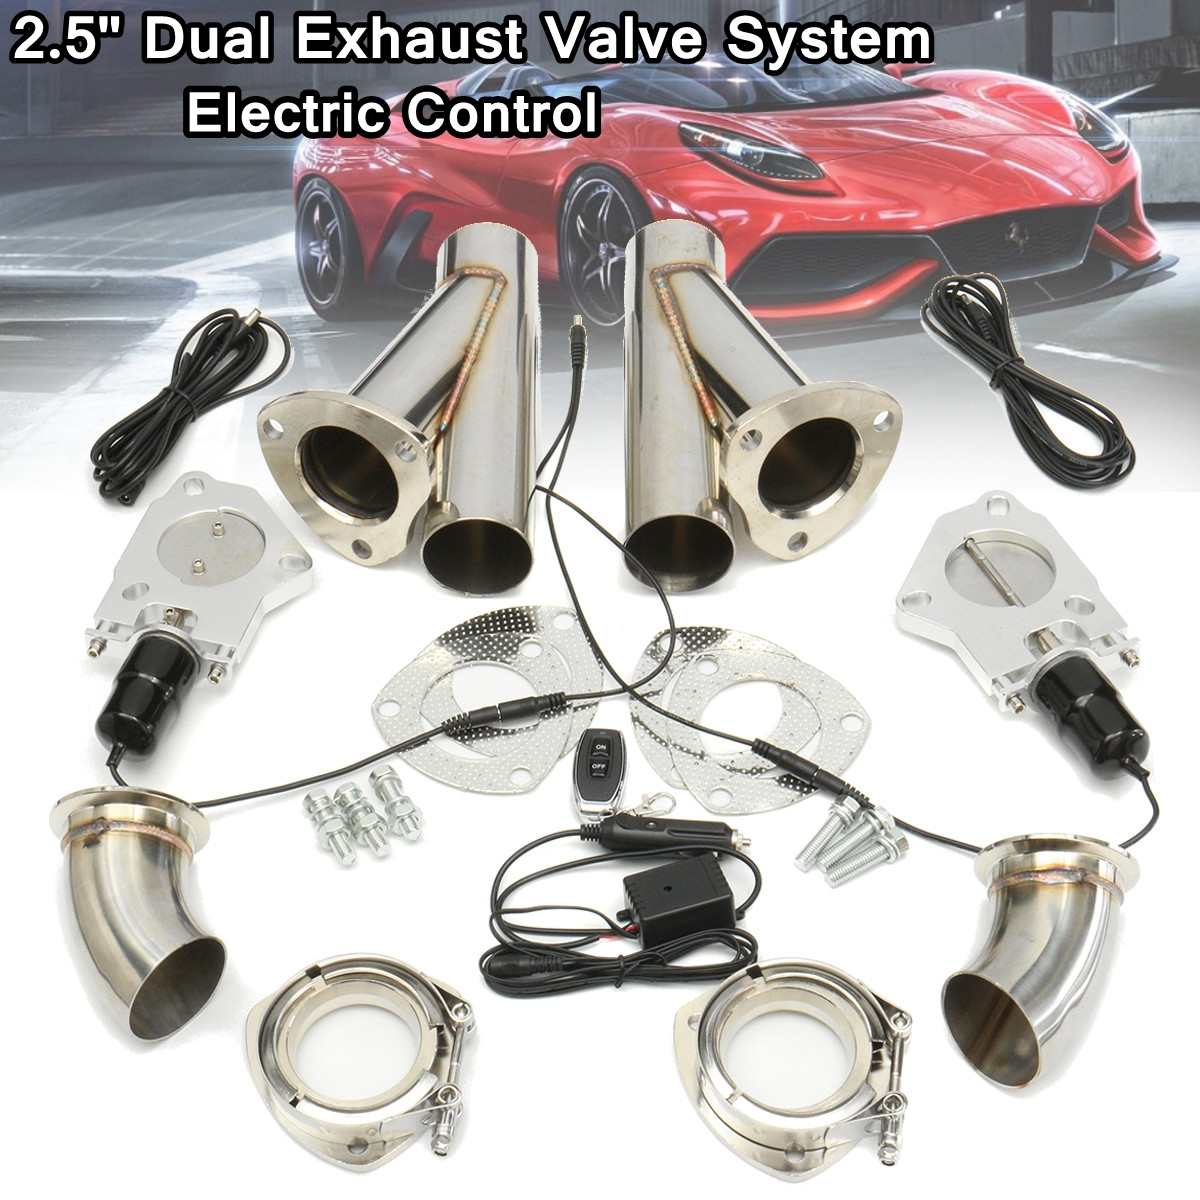 2.5 Inch 6.3mm Dual Exhaust Catback Down Pipe Cutout Taps System Electric Control Kit